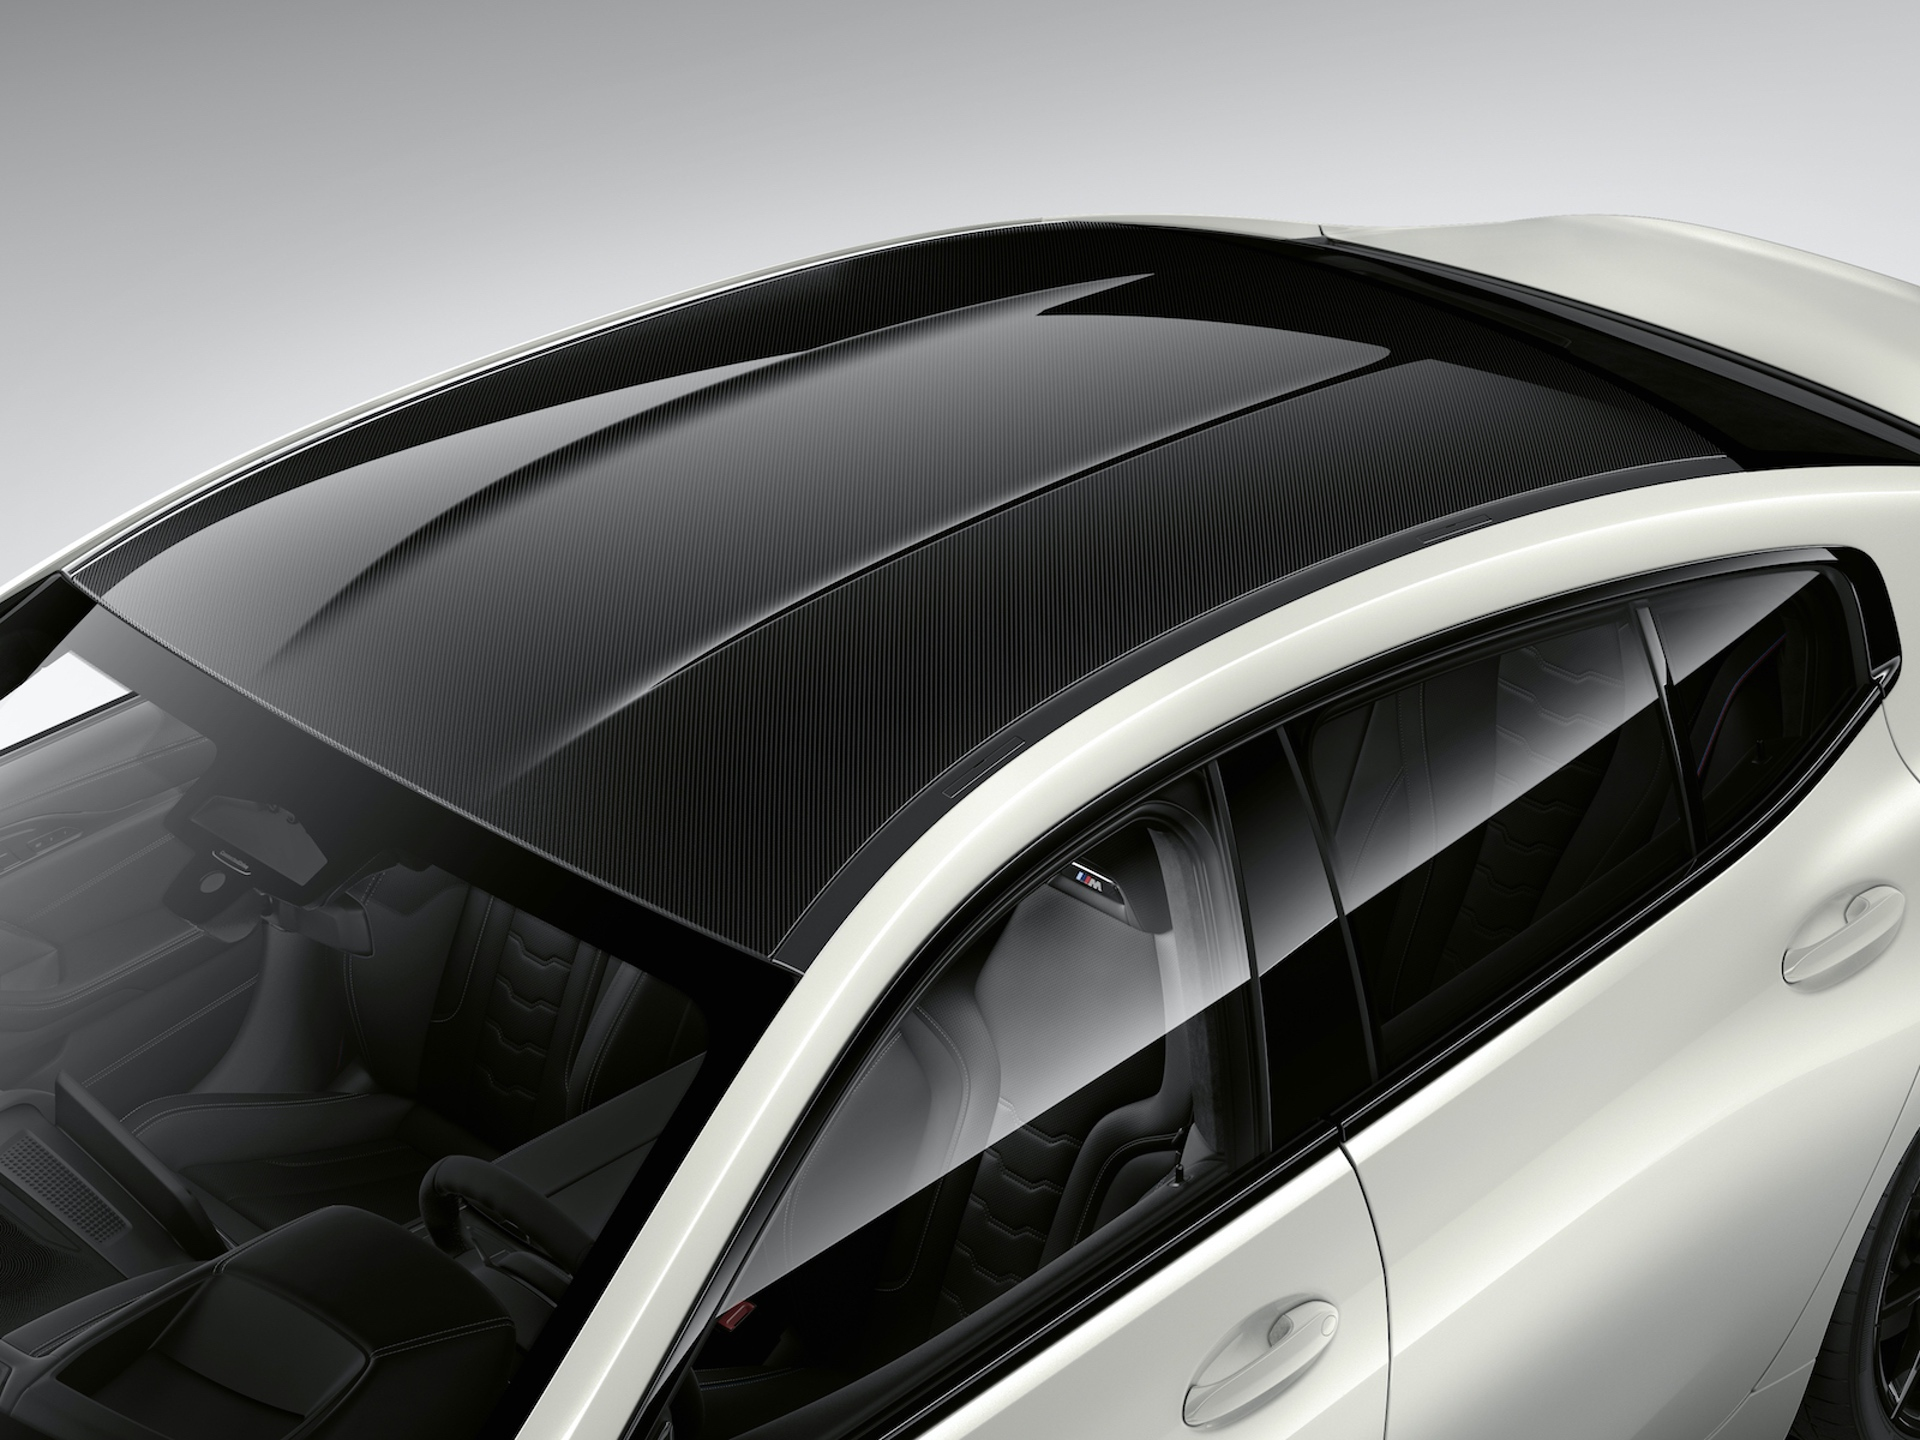 M Carbon Roof 8 Series 0